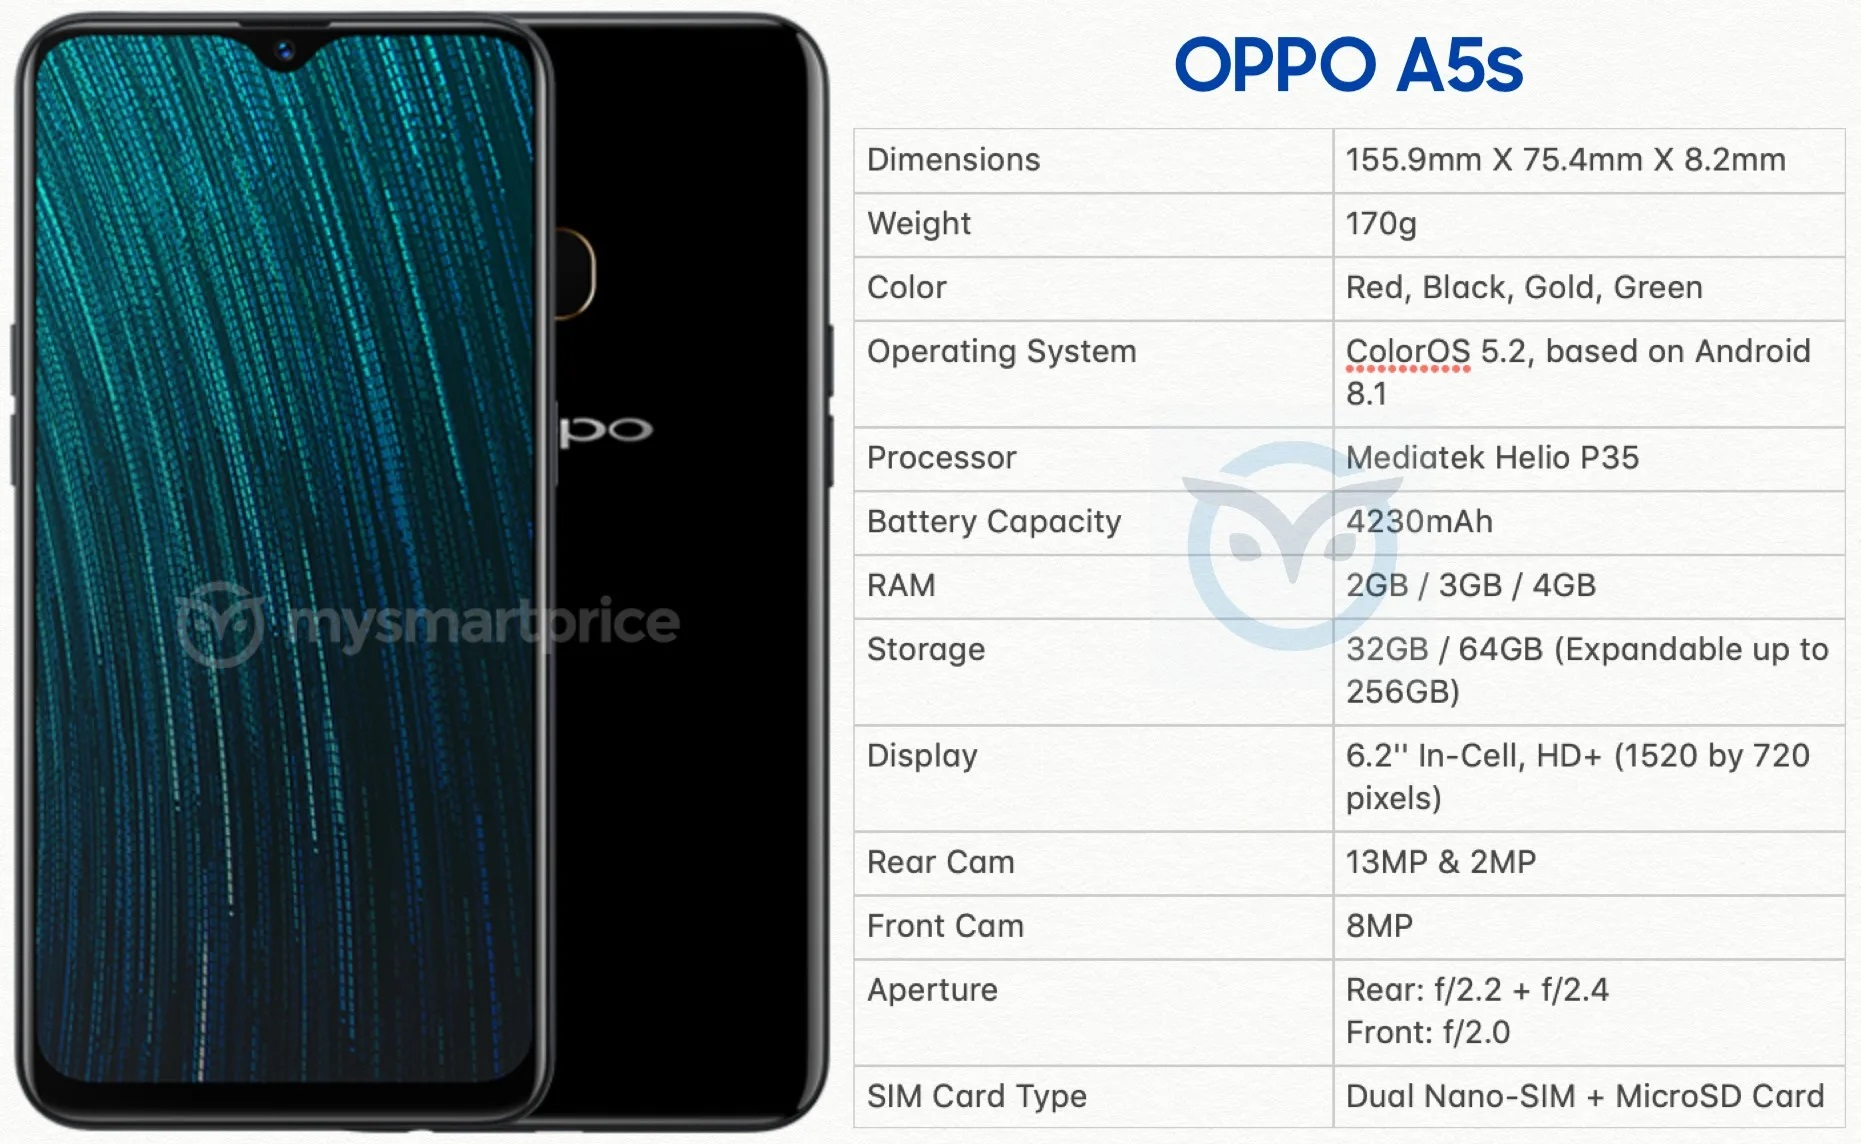 Oppo A5s specs